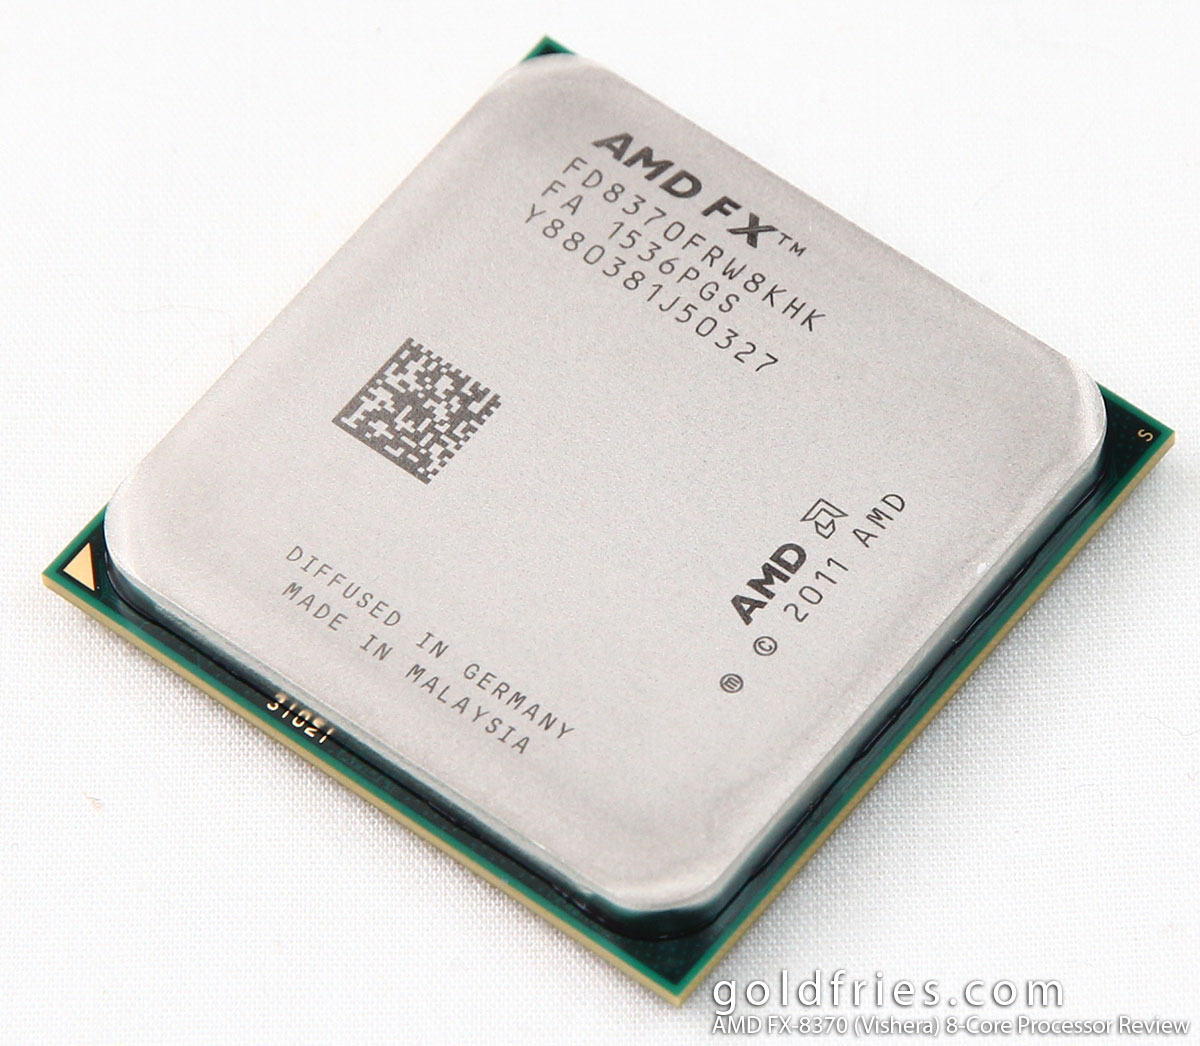 AMD FX-8370 (Vishera) 8-Core Processor Review 1